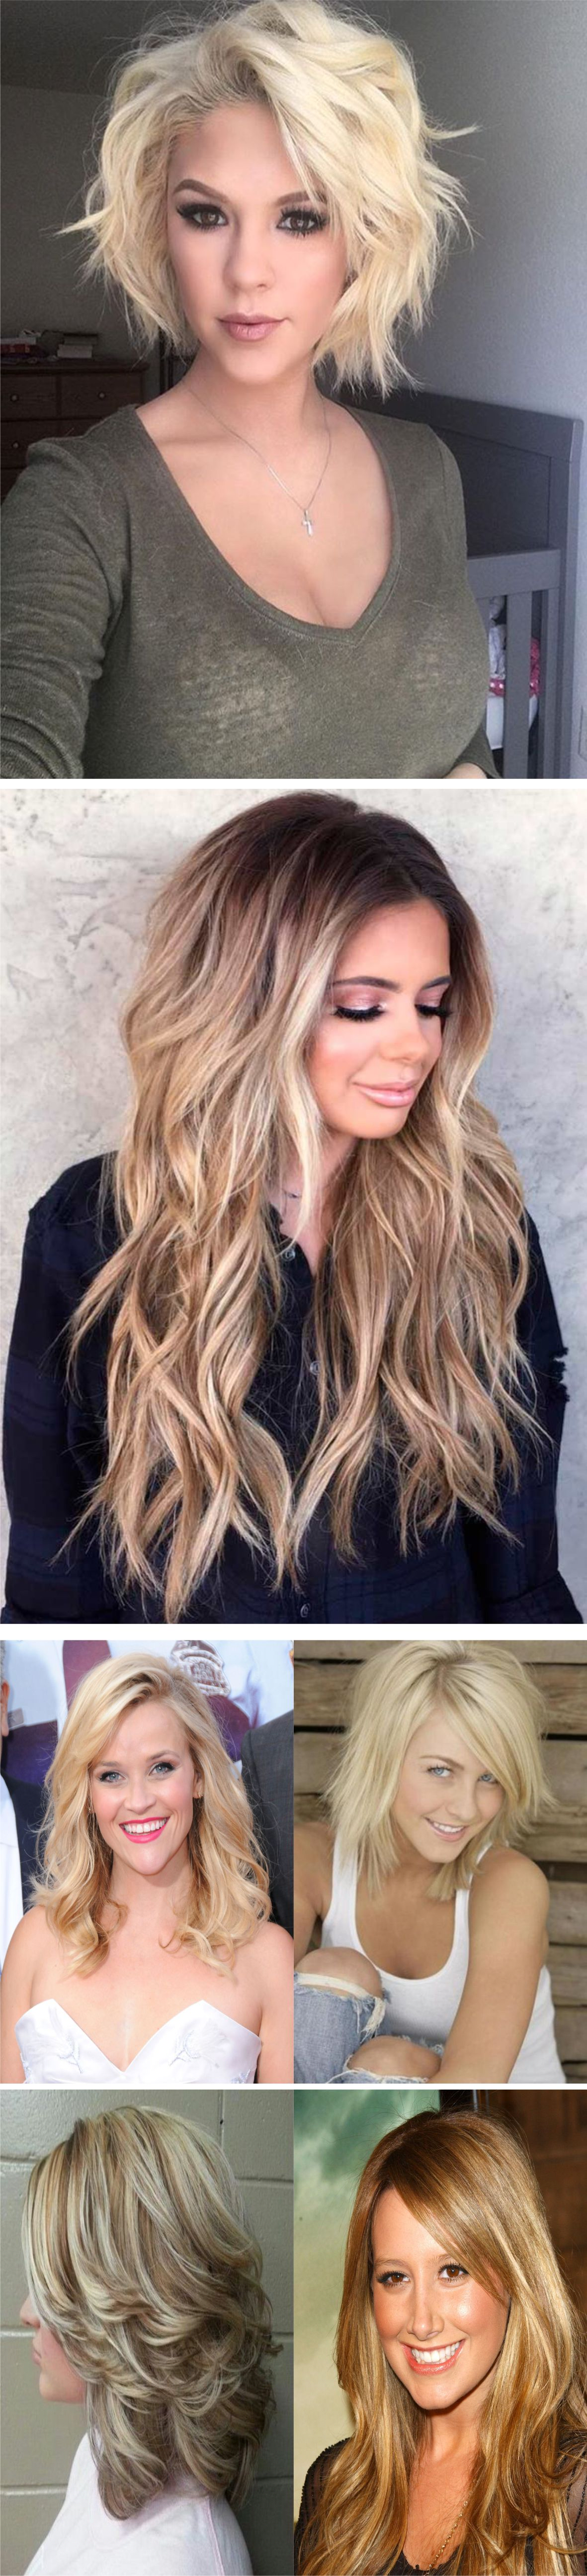 New Beautiful layered haircuts ideas 2018